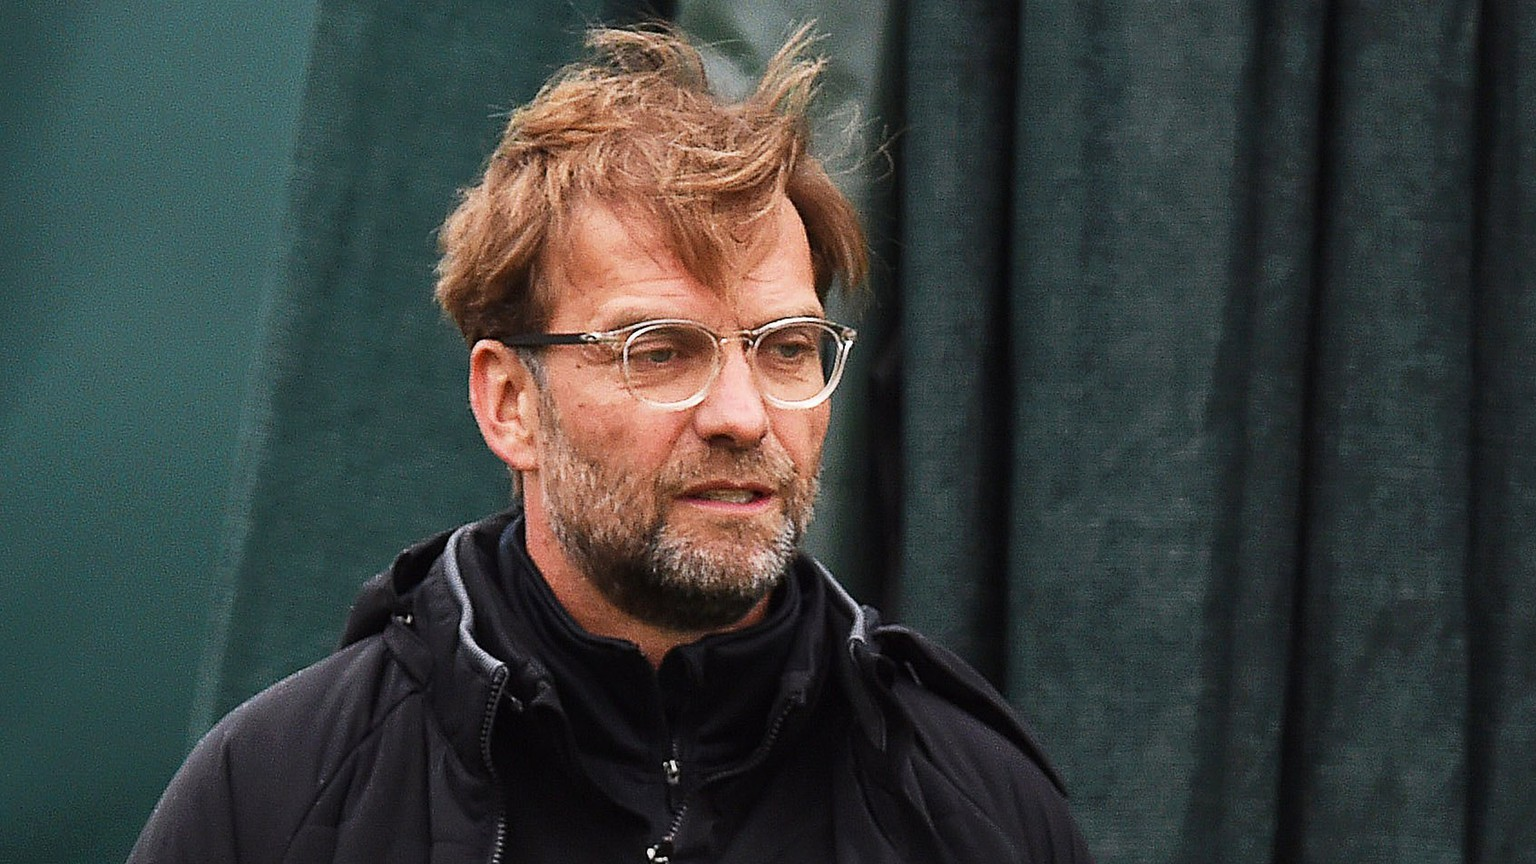 epa06687576 Liverpool's manager Juergen Klopp leads his team's a training session at the Melwood in Liverpool, Britain, 23 April 2018. Liverpool FC will face AS Roma in the UEFA Champions League semi final, first leg soccer match at Anfield on 24 April 2018.  EPA/PETER POWELL